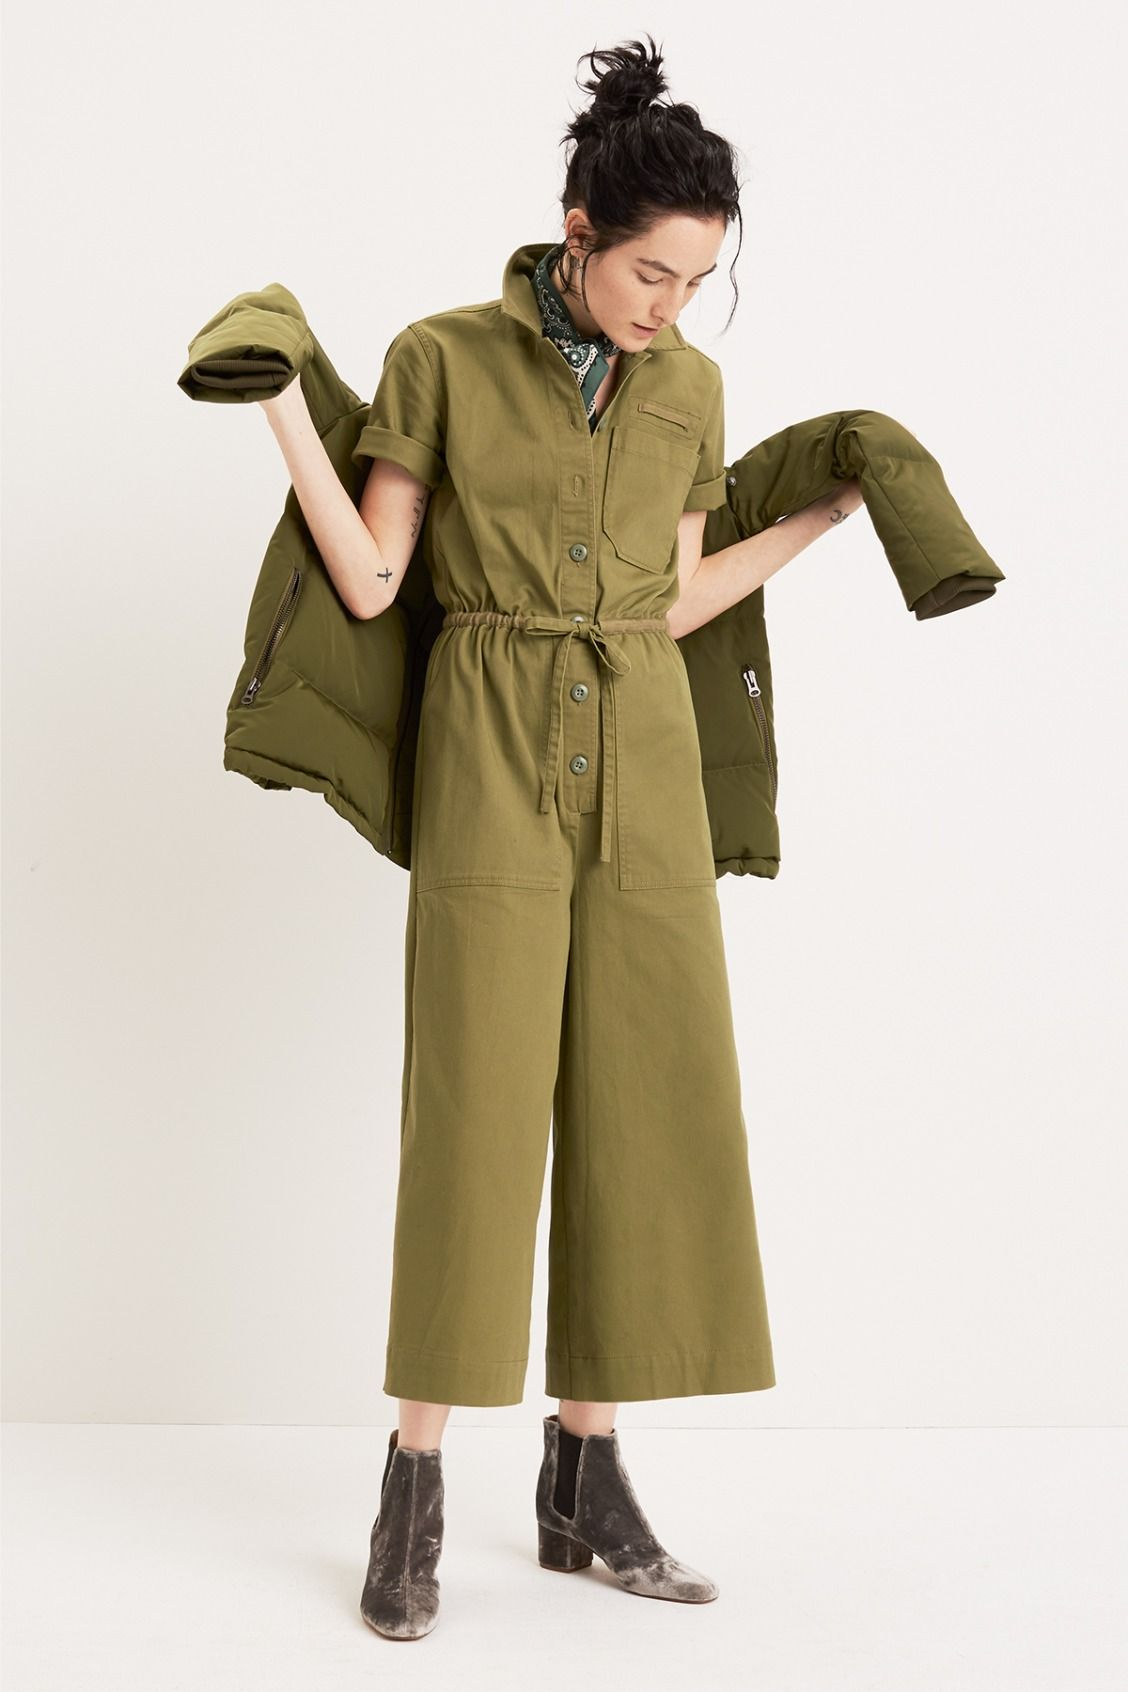 8310c8c3b2f madewell wide-leg utility jumpsuit worn with the quilted down parka +  walker chelsea boot. call 866 544 1937 or email shopfirst madewell.com to  pre-order.